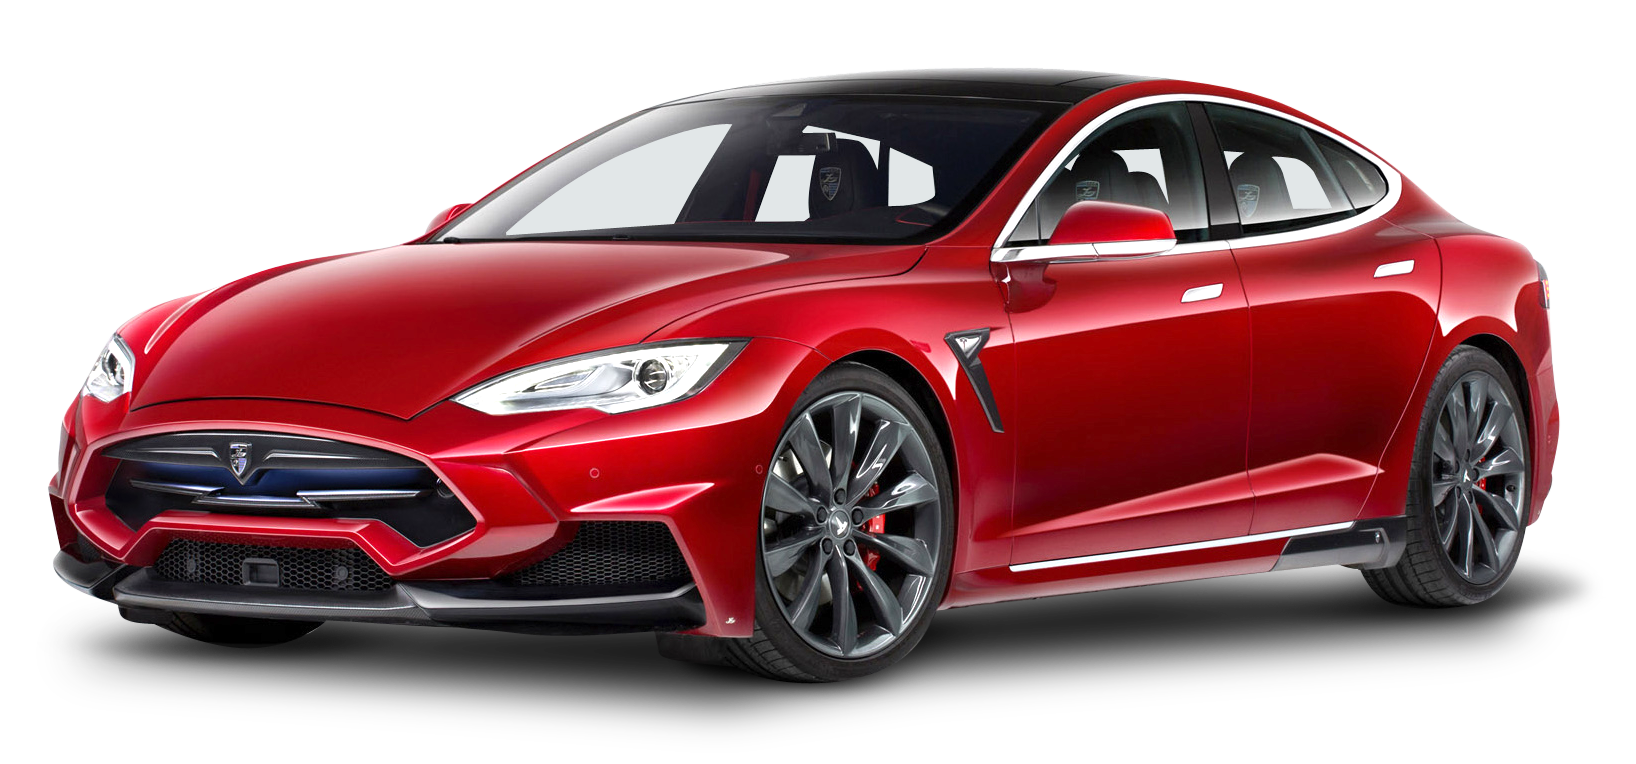 Tesla Model S Red Car PNG Image.